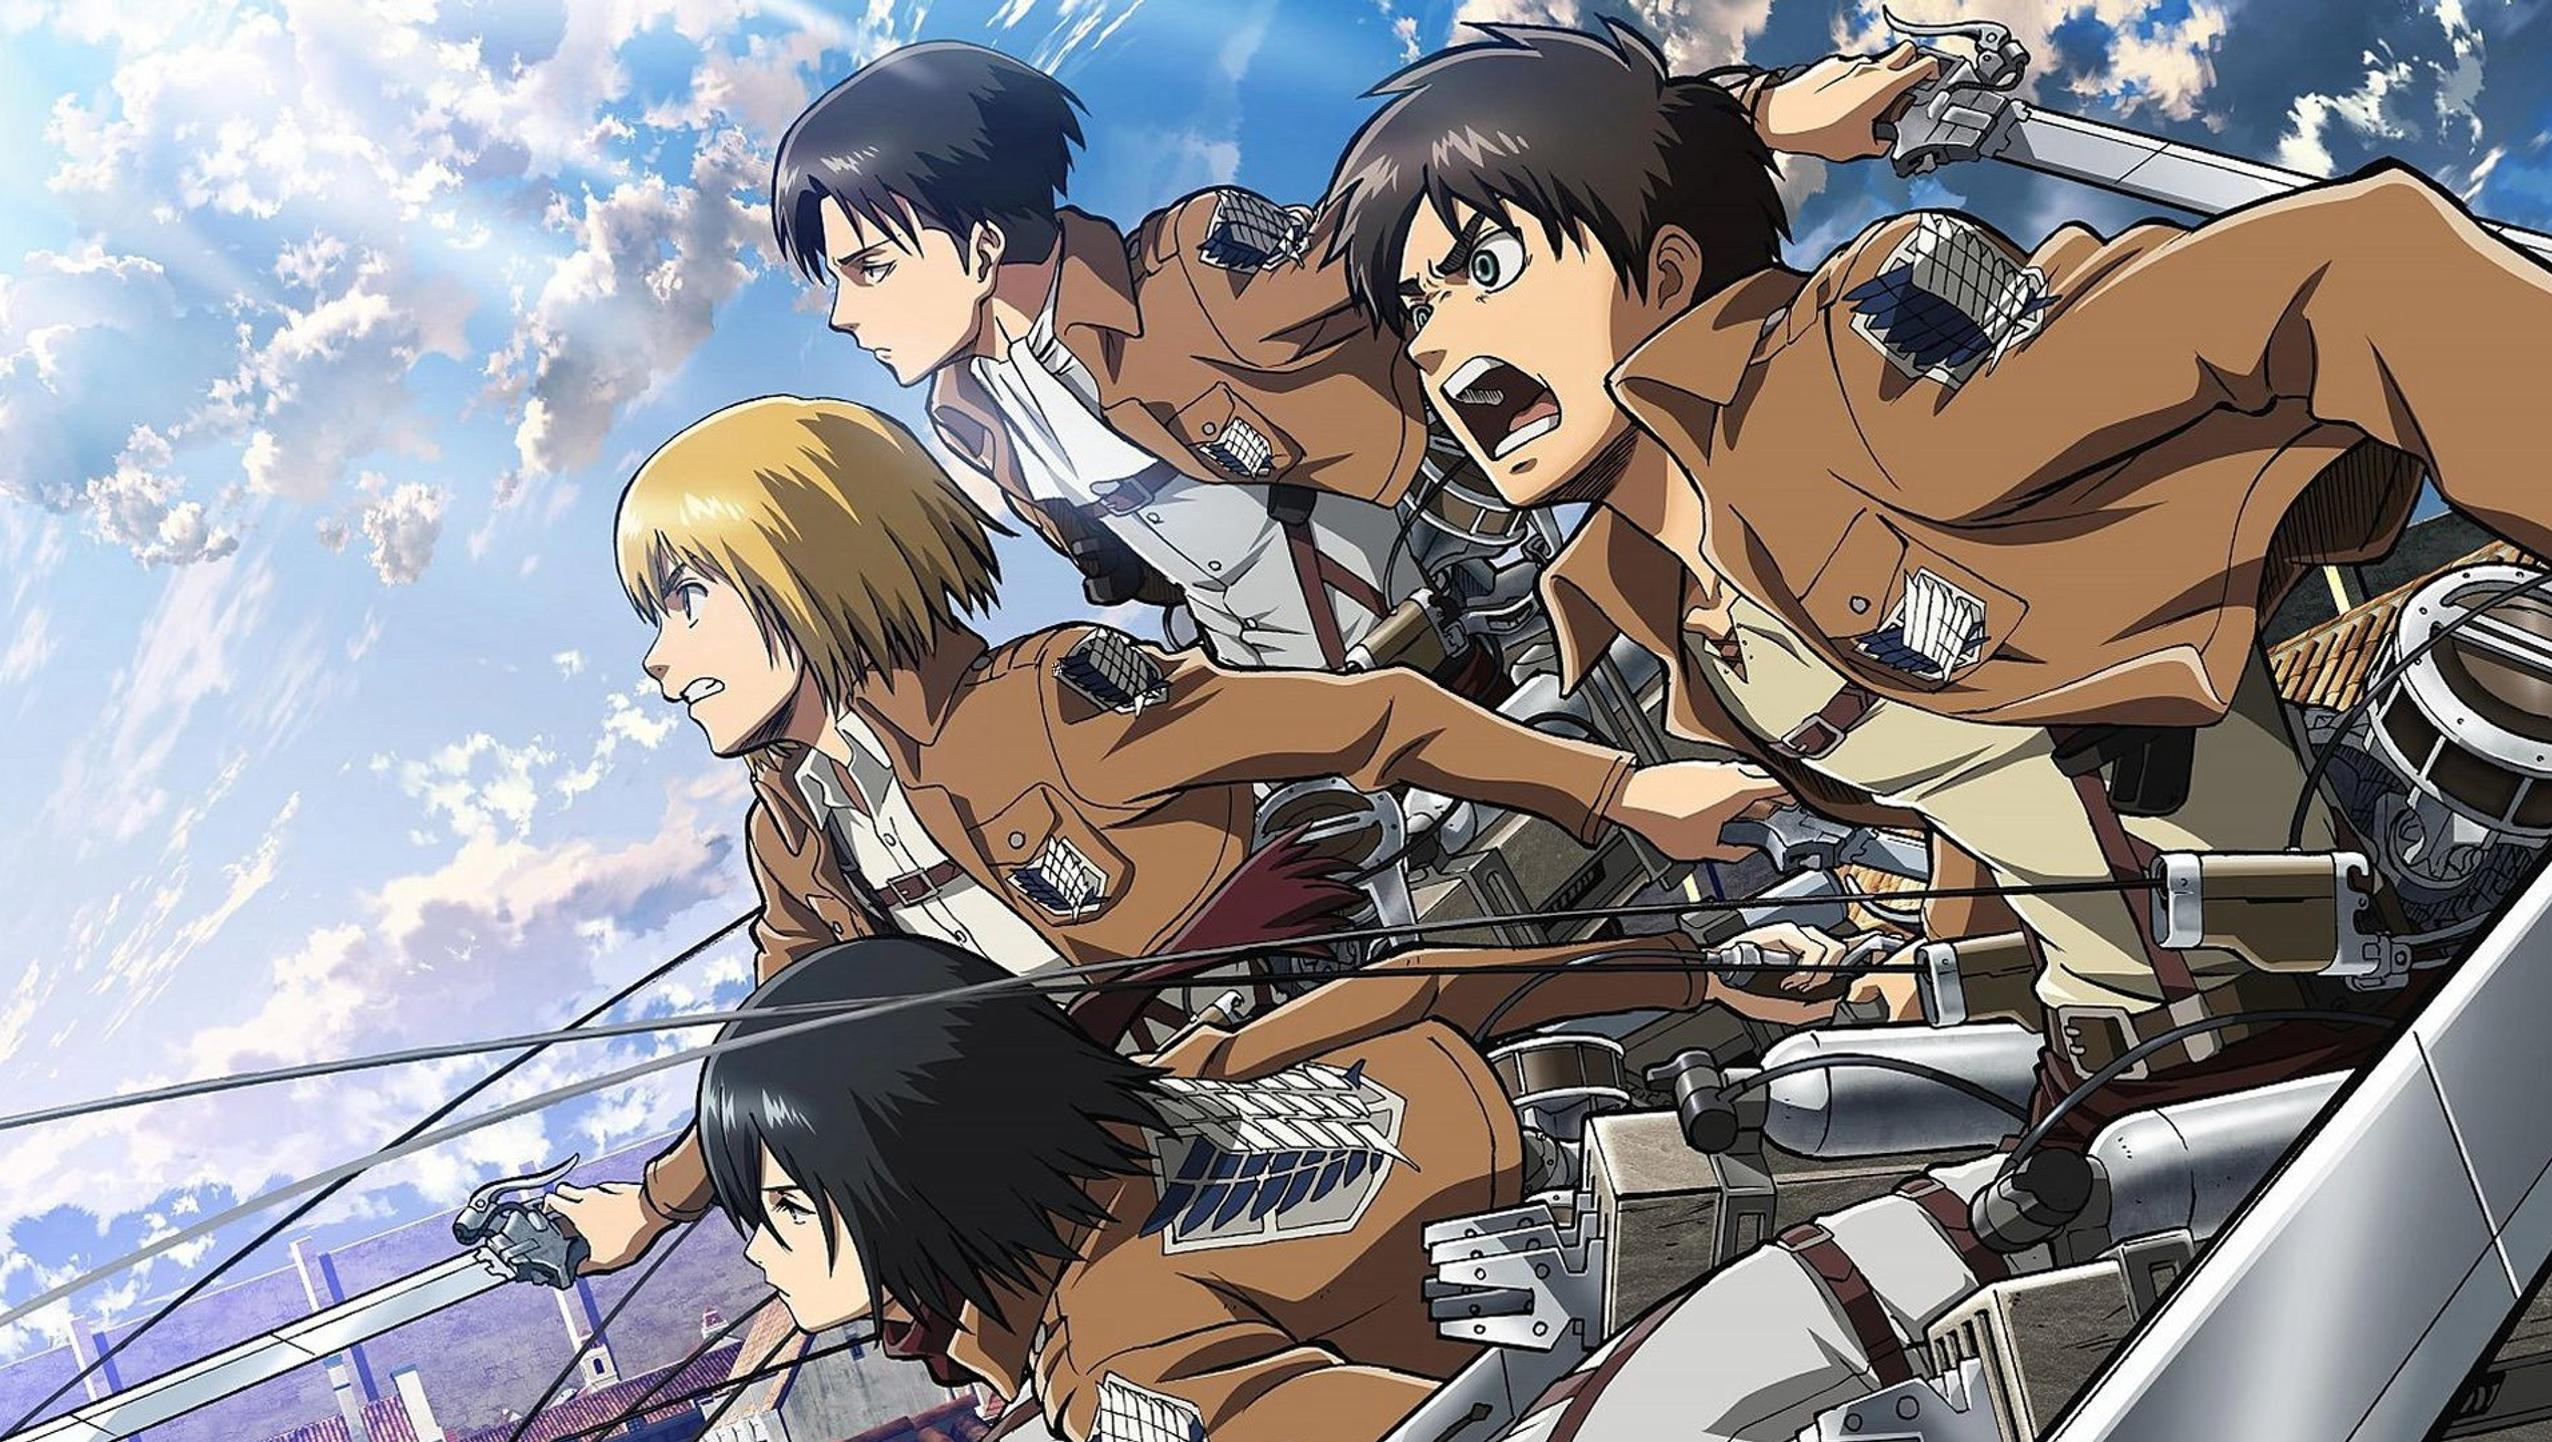 Attack On Titan Pc Wallpapers Top Free Attack On Titan Pc Backgrounds Wallpaperaccess